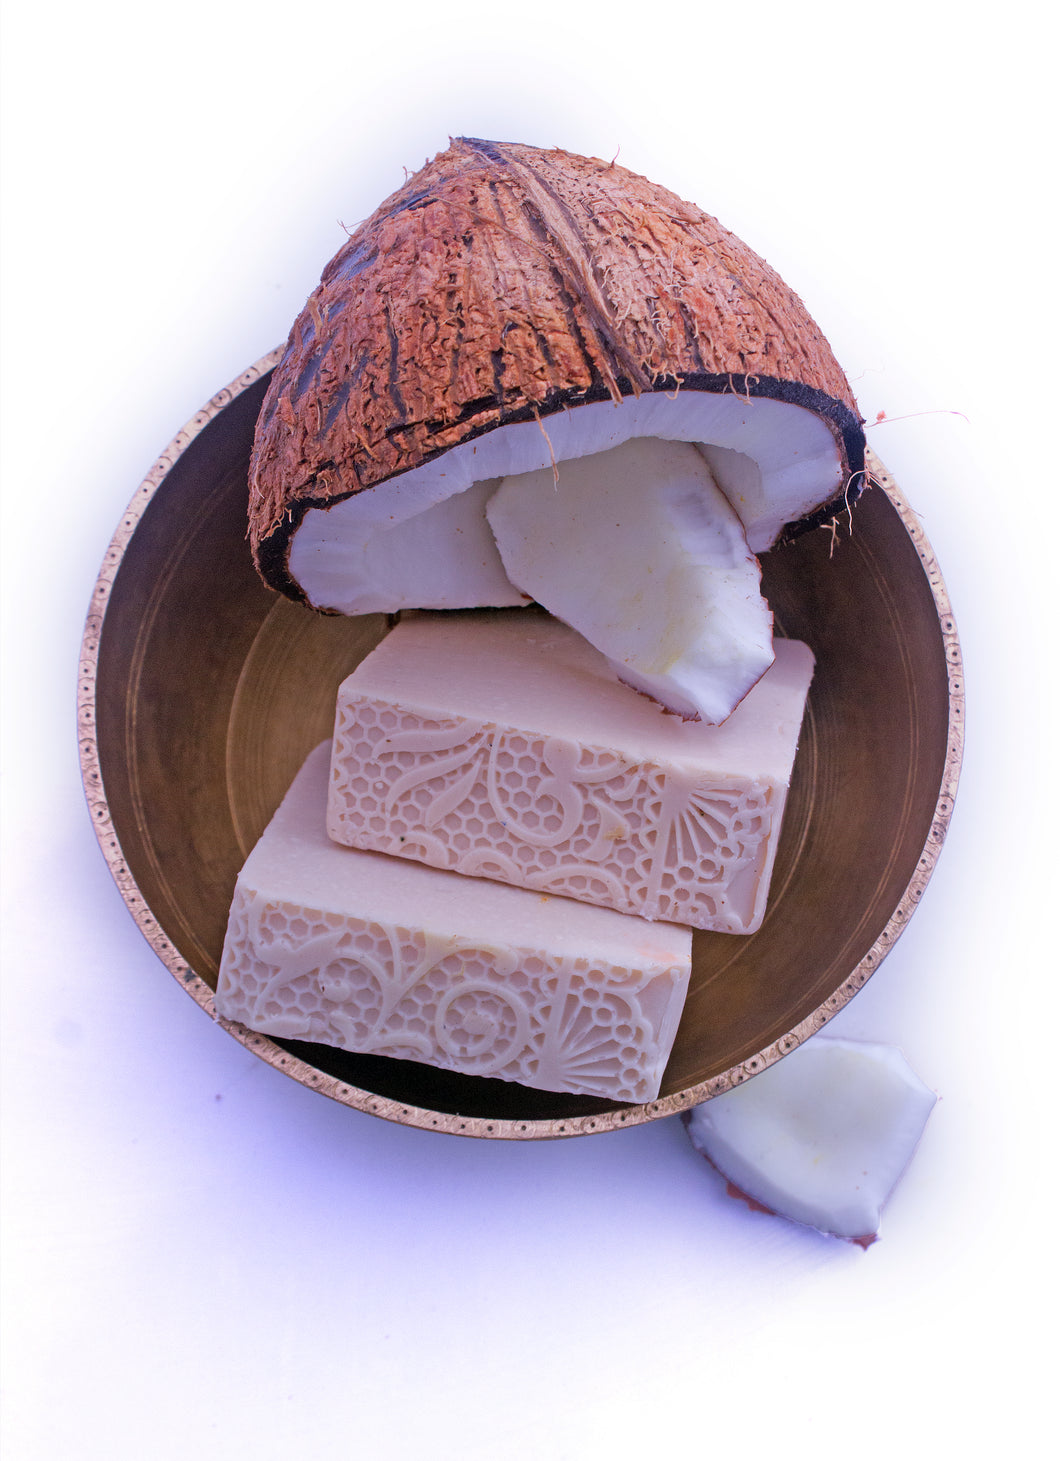 Cold Processed Soap (Coconut Milk)